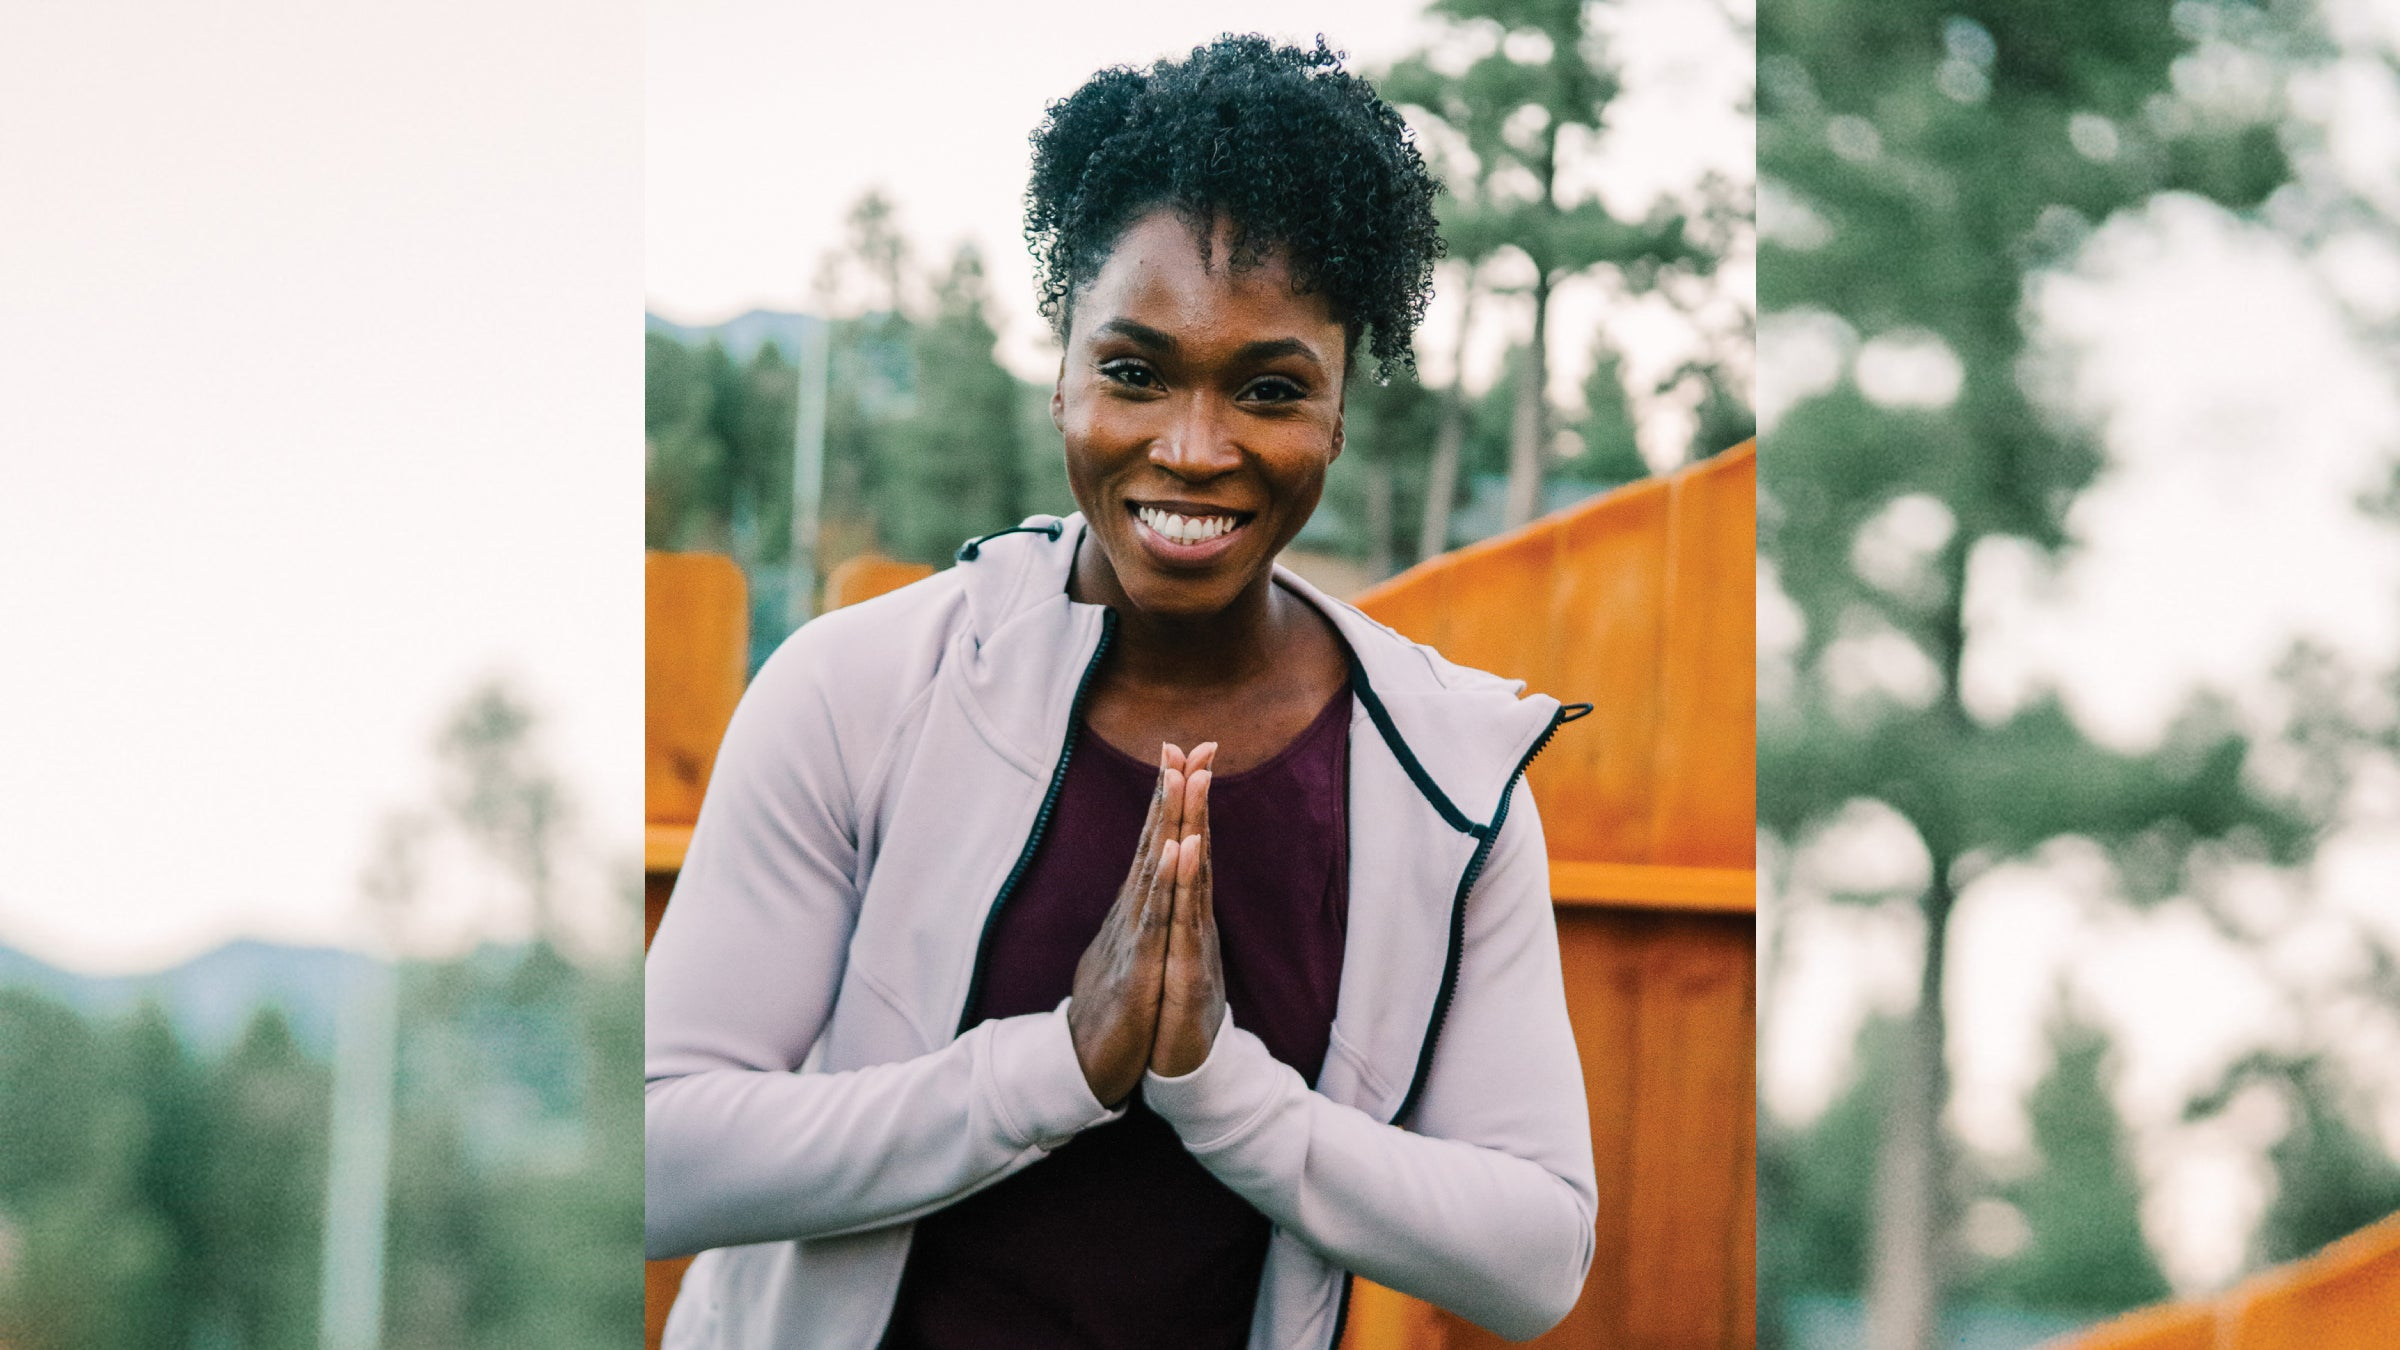 Tianna Bartoletta poses with her hands in prayer pose